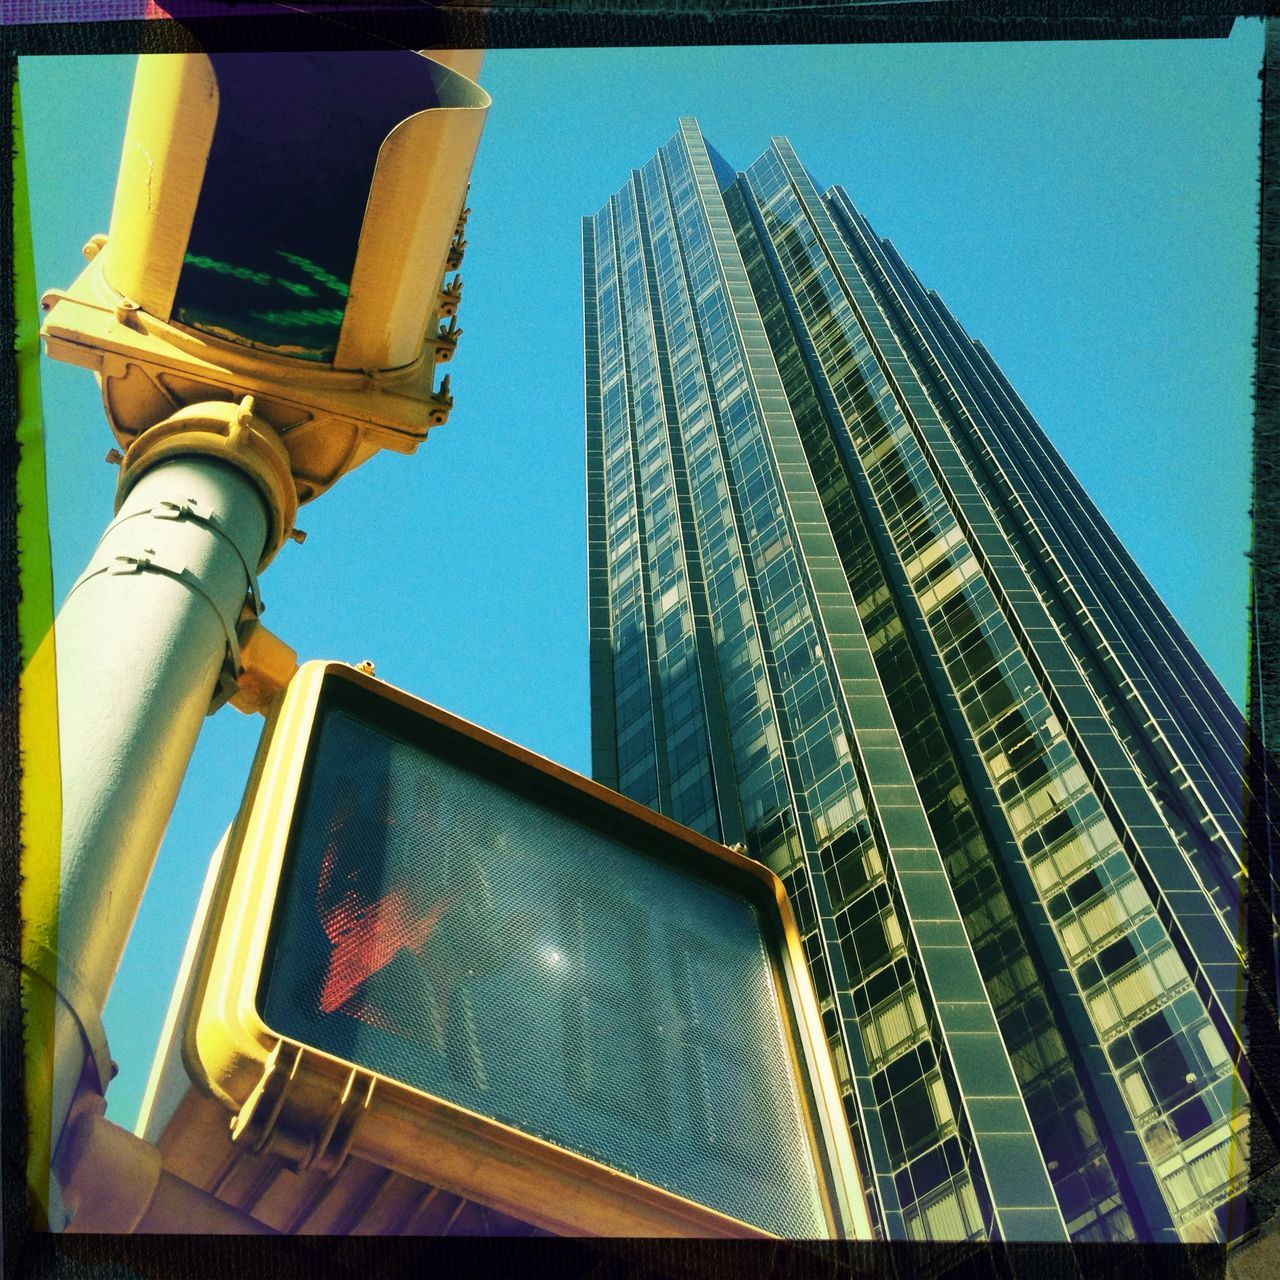 Low angle view of tall building and traffic signal